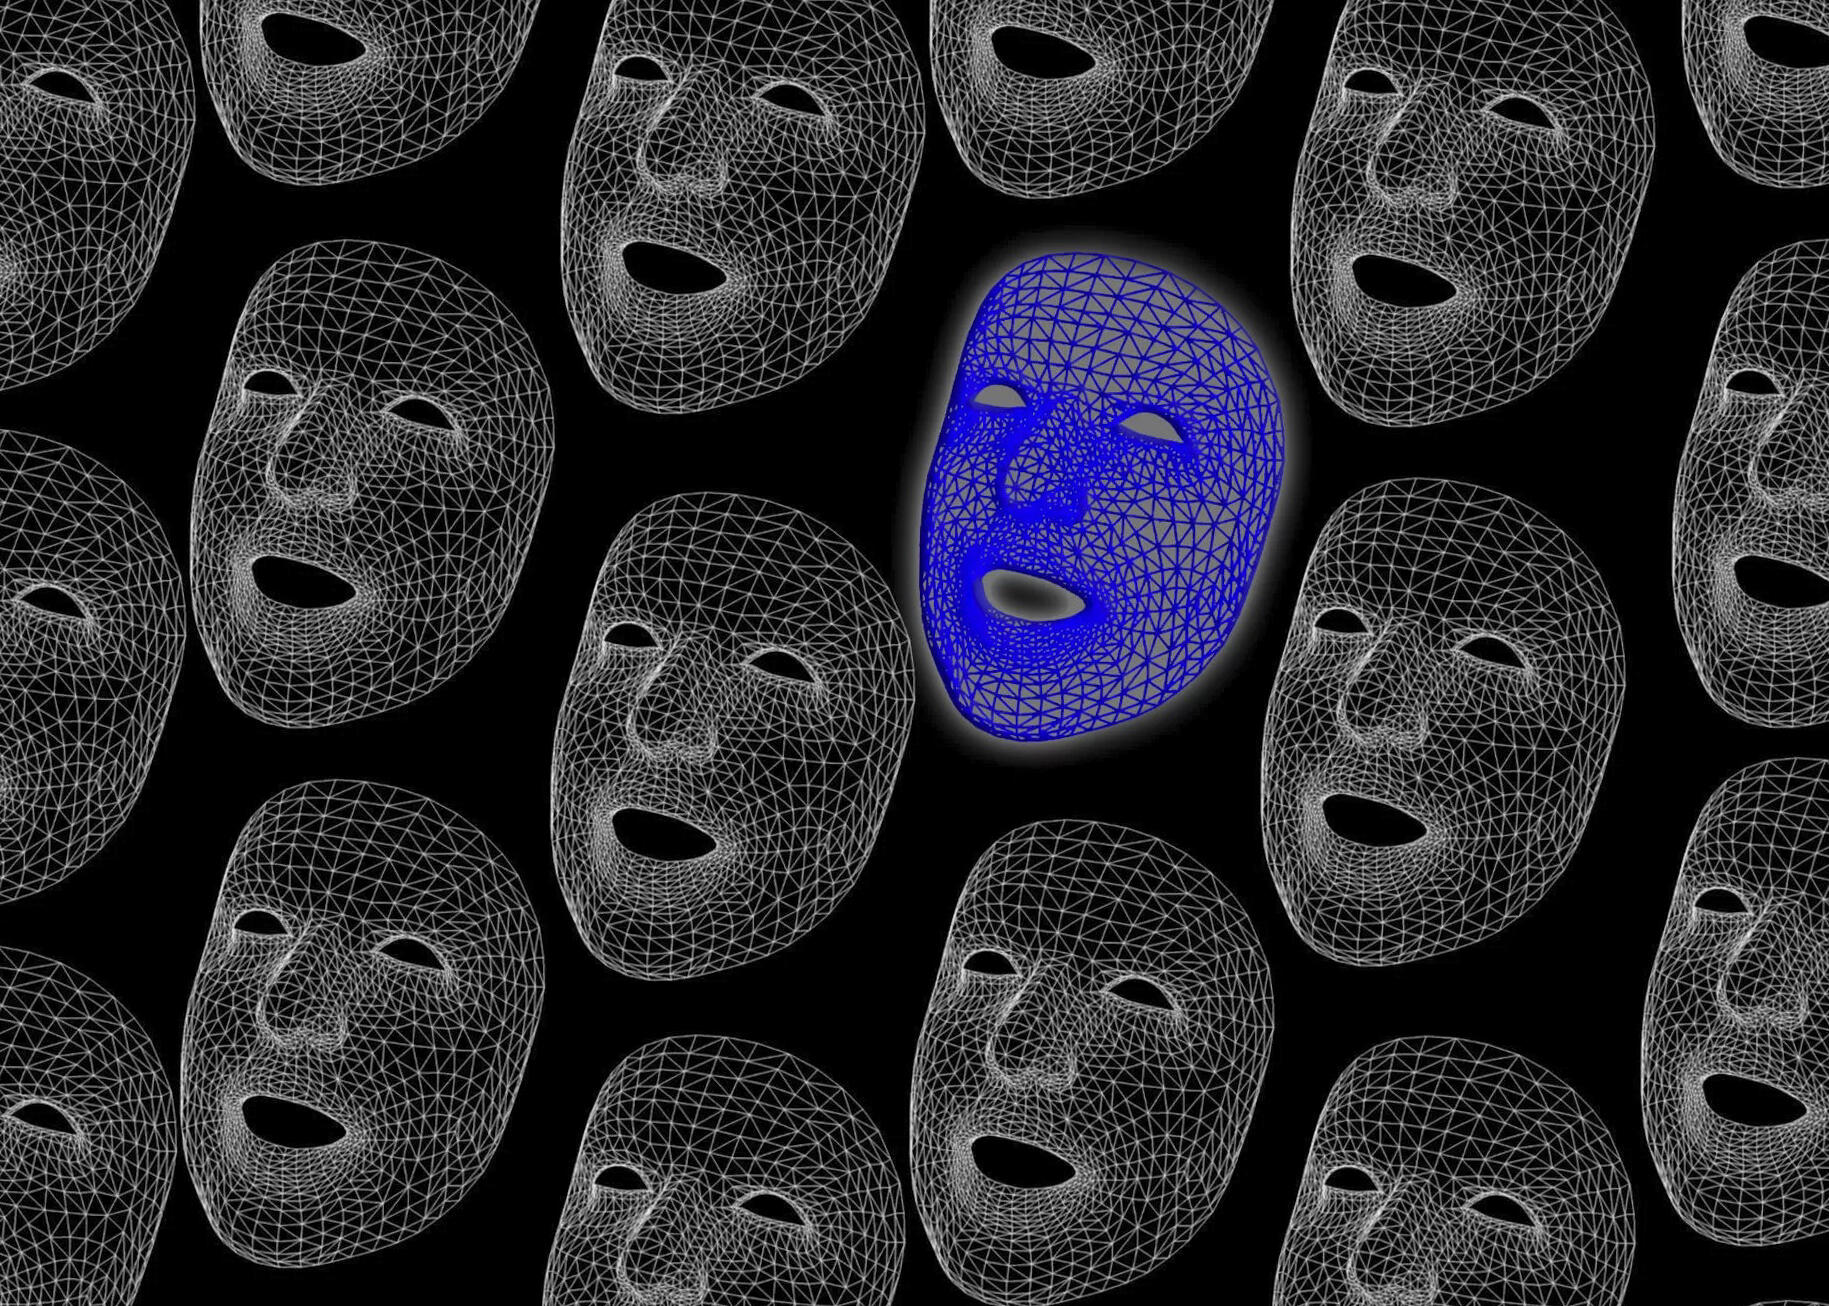 <p>Cities have banned facial recognition in police departments, but US lawmakers haven't yet passed regulations for its use by law enforcement.</p>